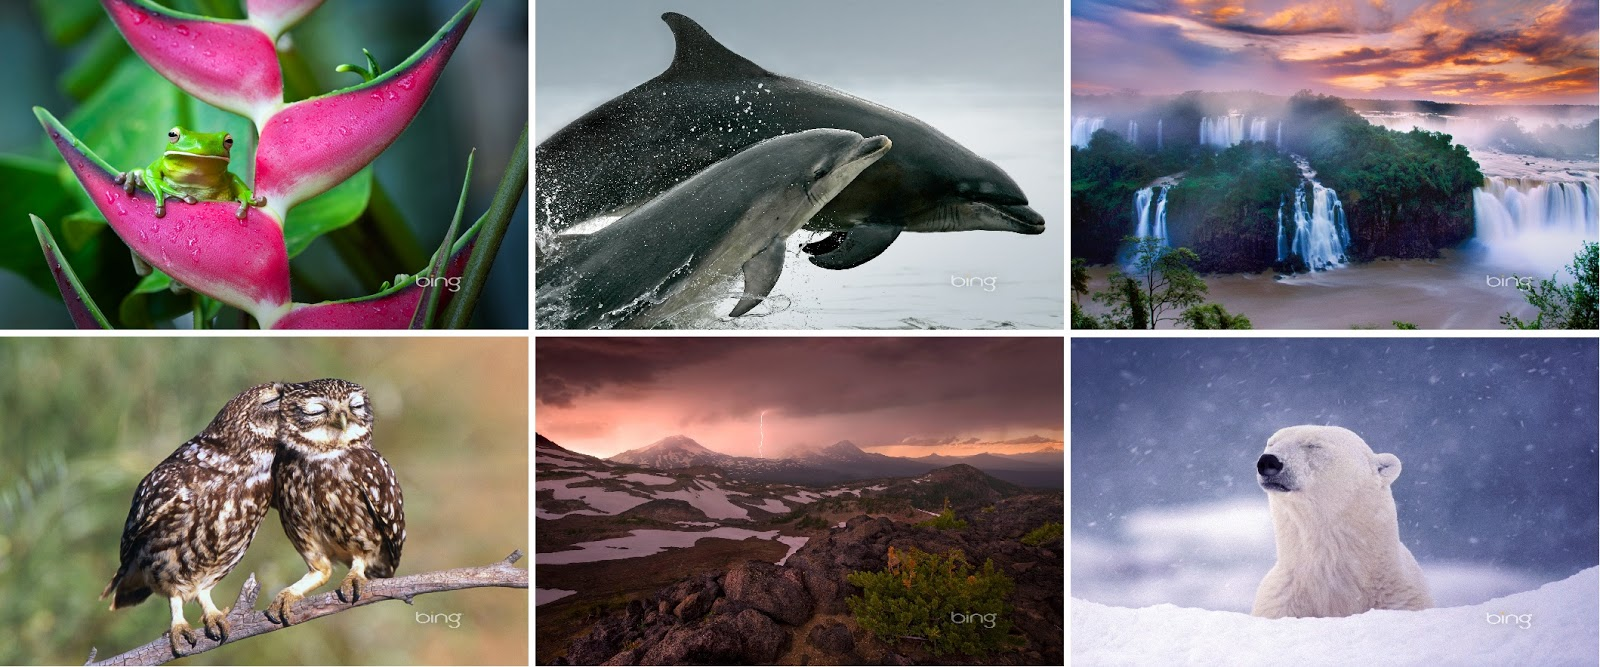 hd wallpapers of bing february collection 2013 bing updates wallpaper 1600x667